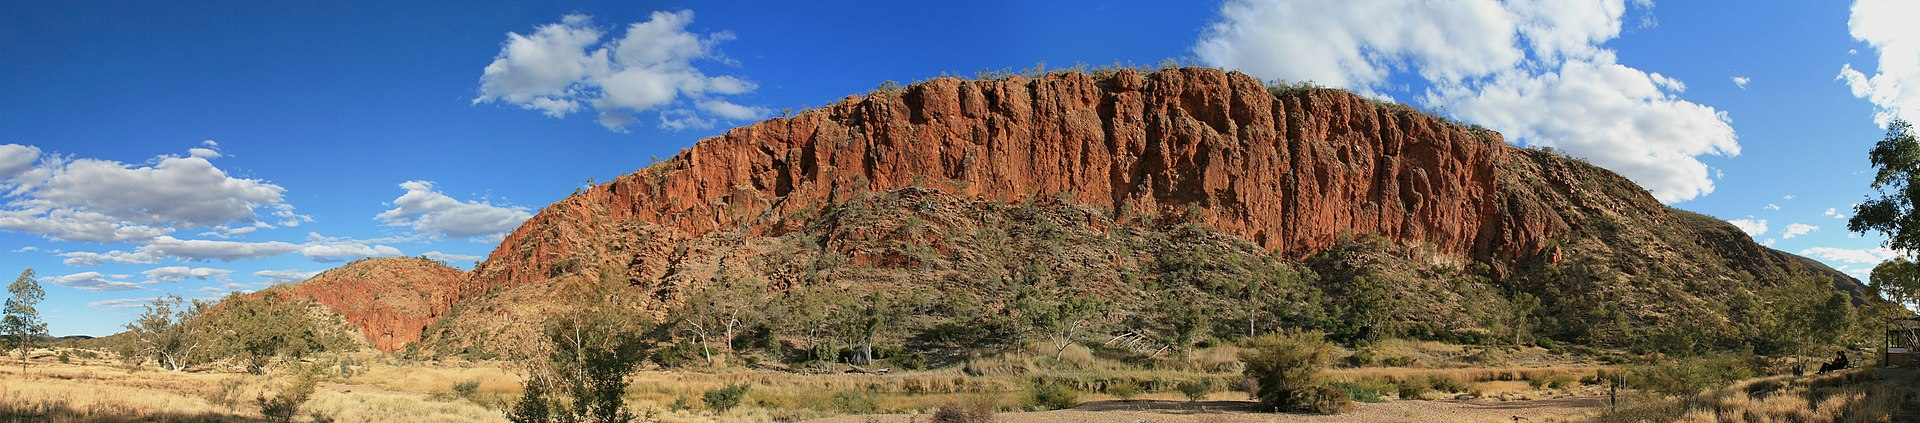 Glen Helen Gorge NorthernTerritory Panorama by Toby Hudson, Wikipedia CC